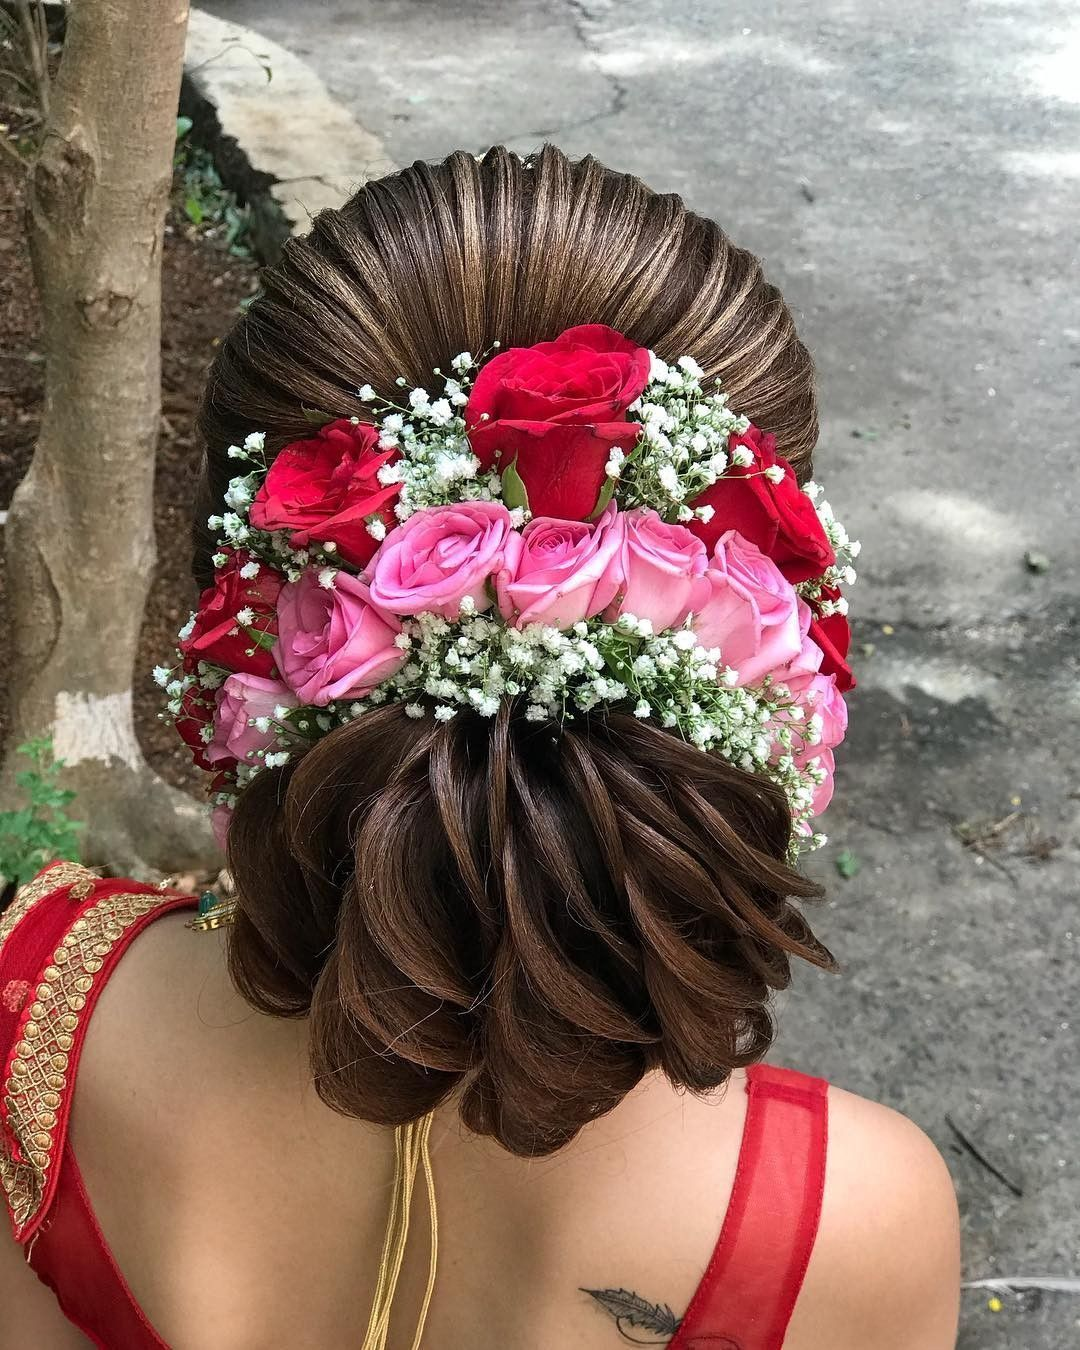 Wedding Juda Hairstyles: All The Latest Trendy Juda Hairstyles For Short And Long